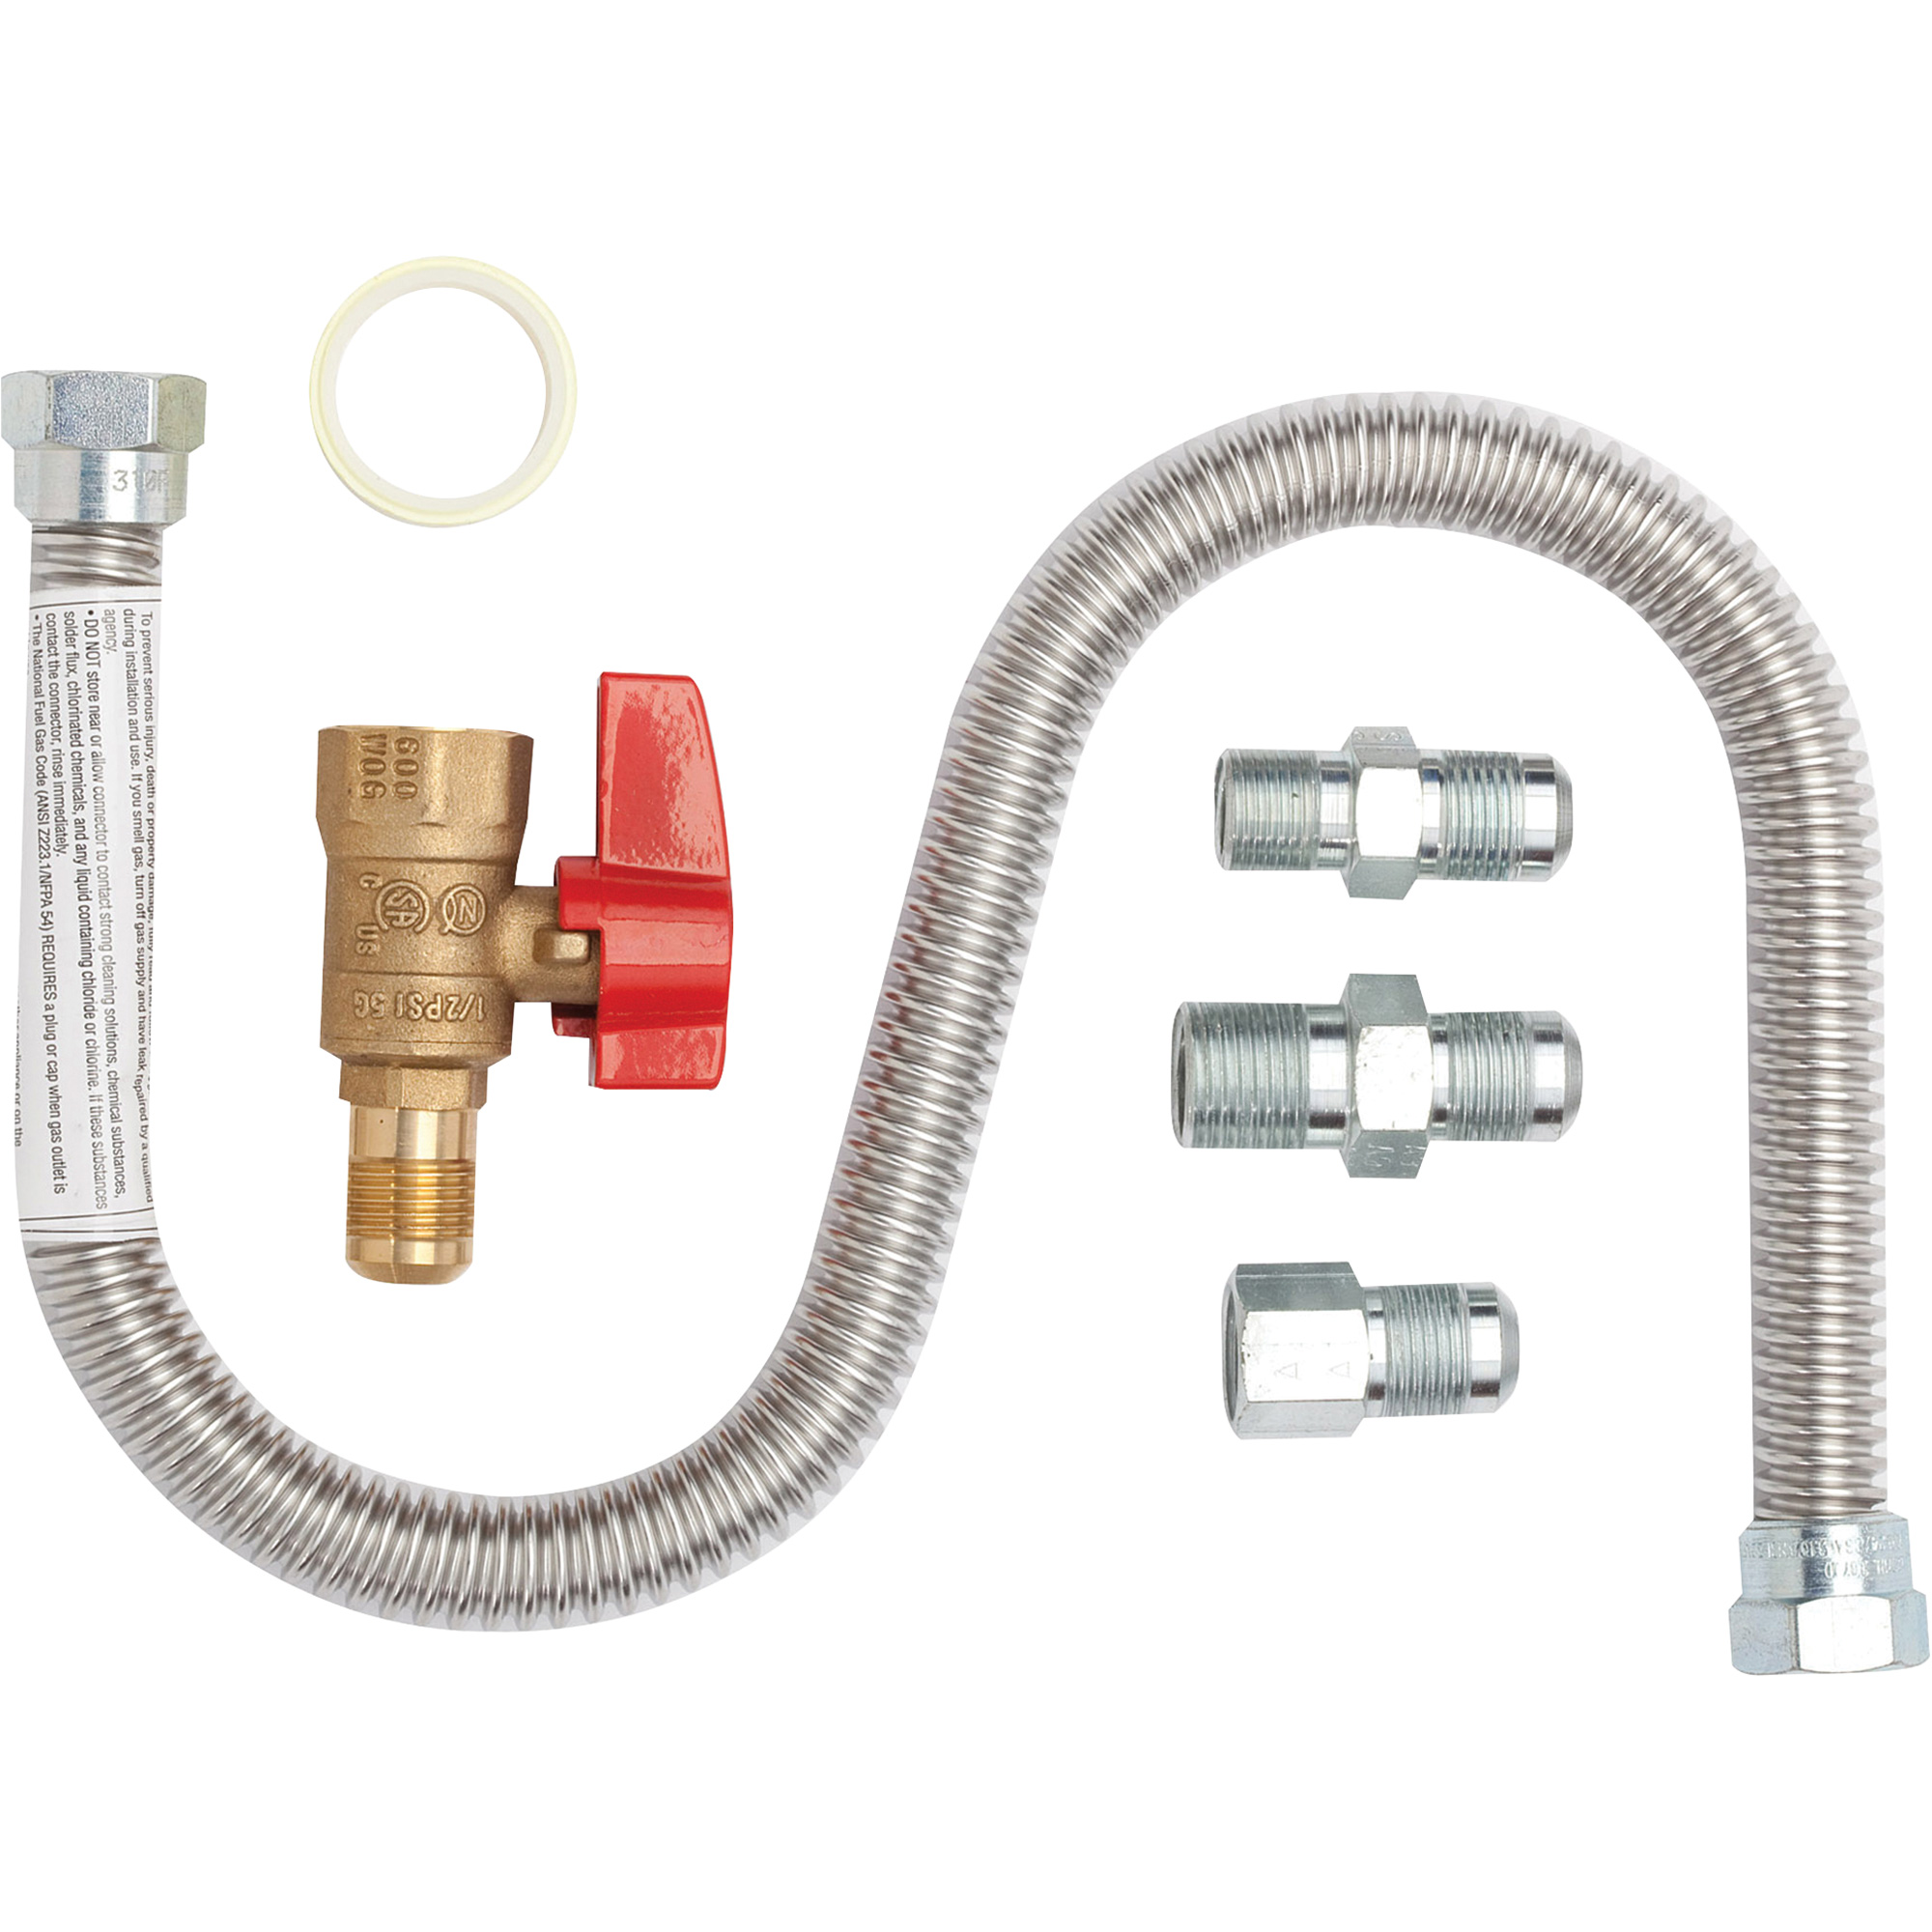 mr heater universal gas connection kit model f271239 northern